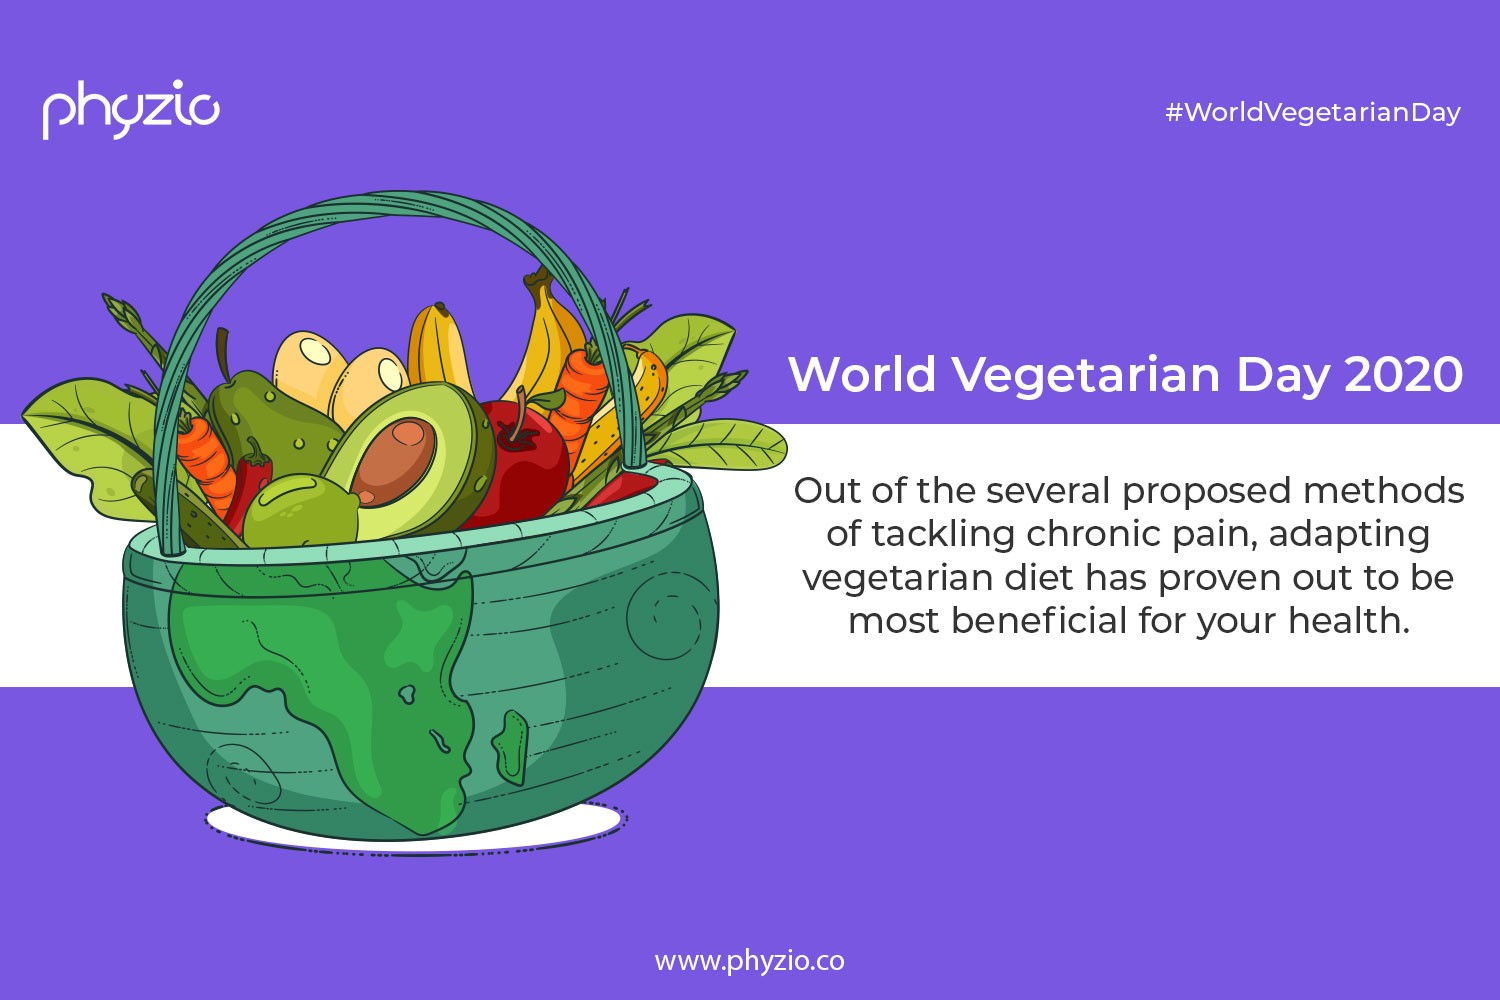 World vegetarian day 2020 and fight chronic pain